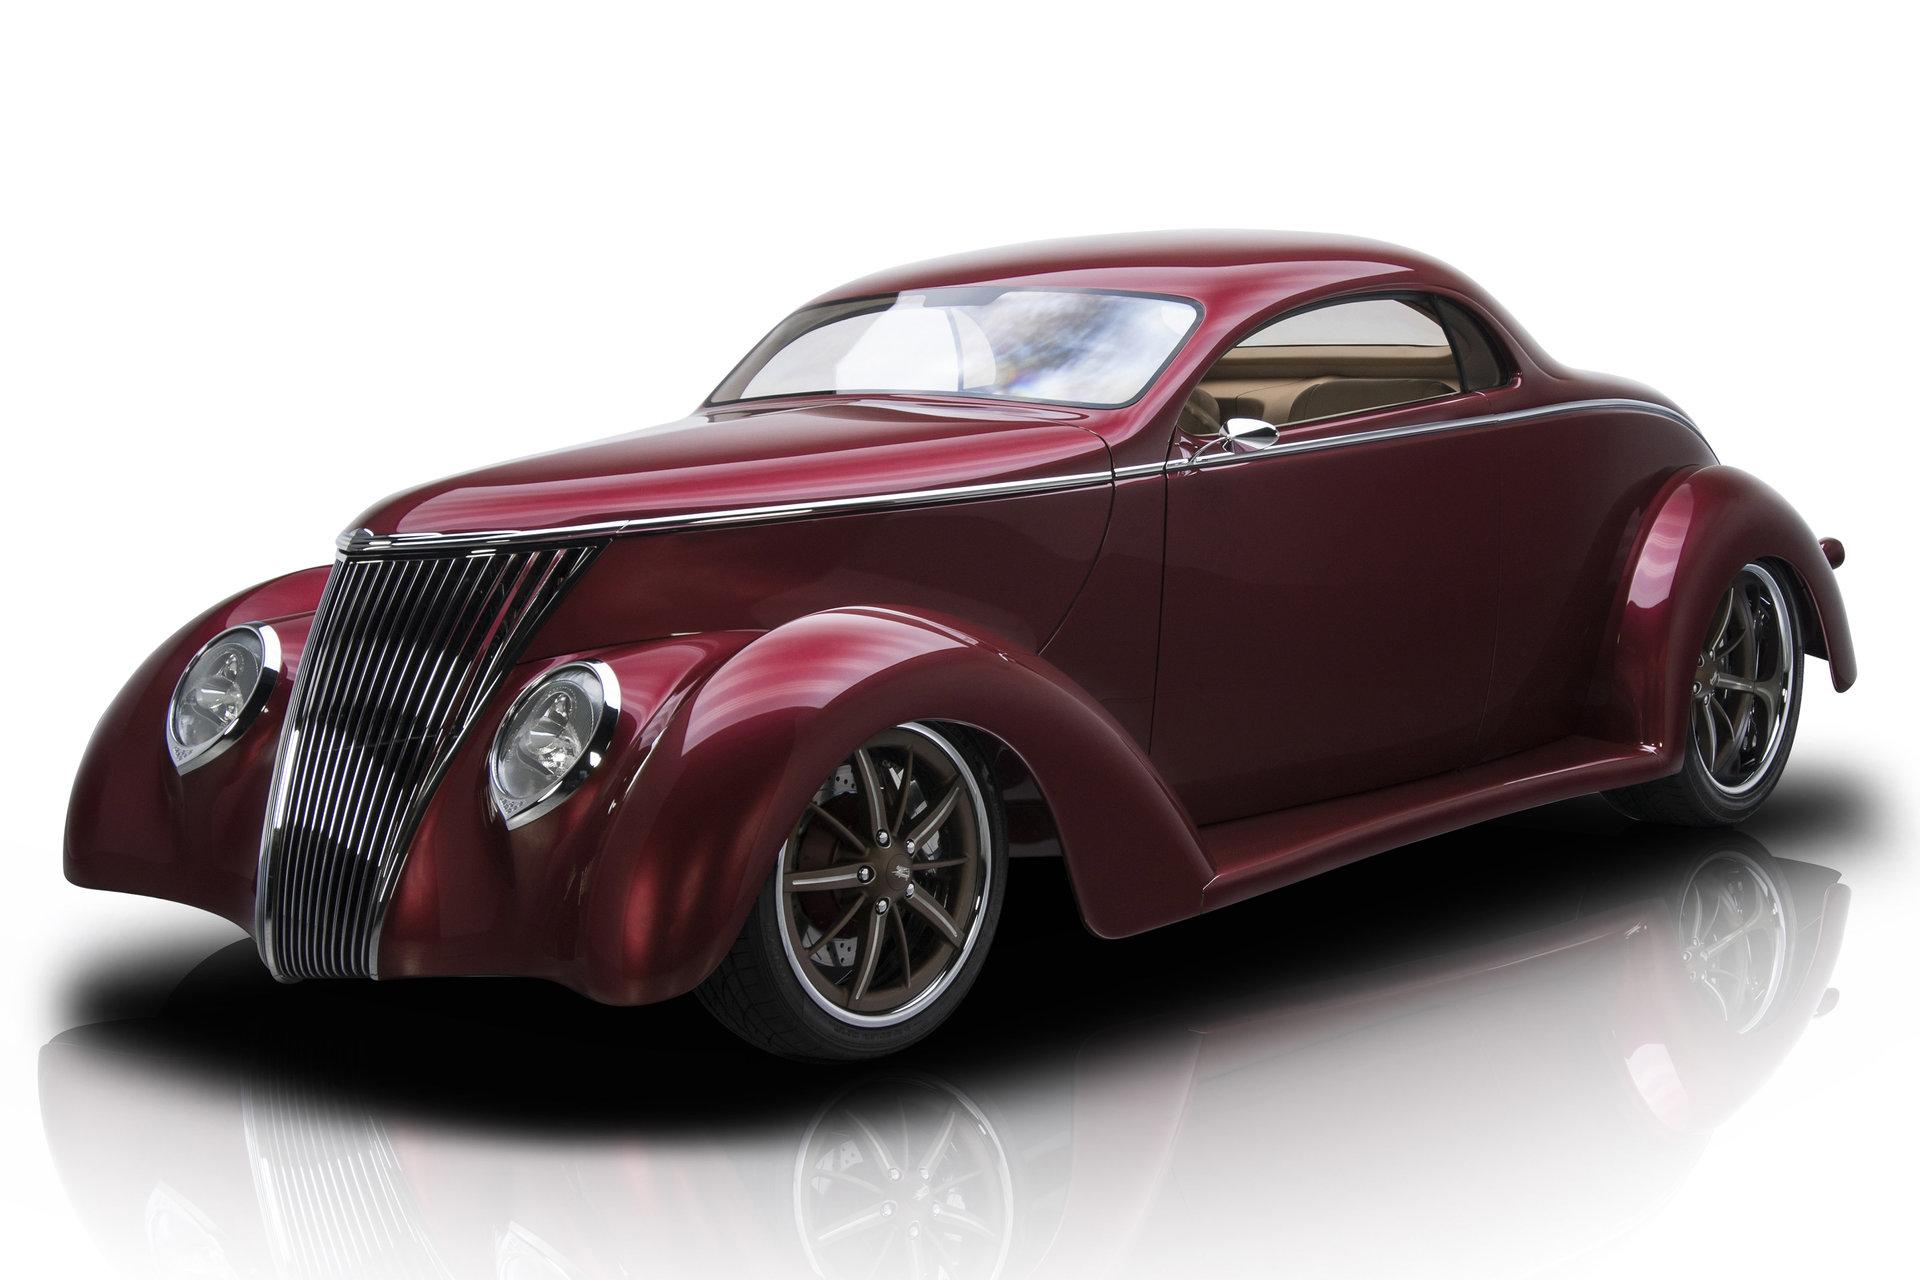 Classic Cars For Sale 1942 Chrysler New Yorker Convertible